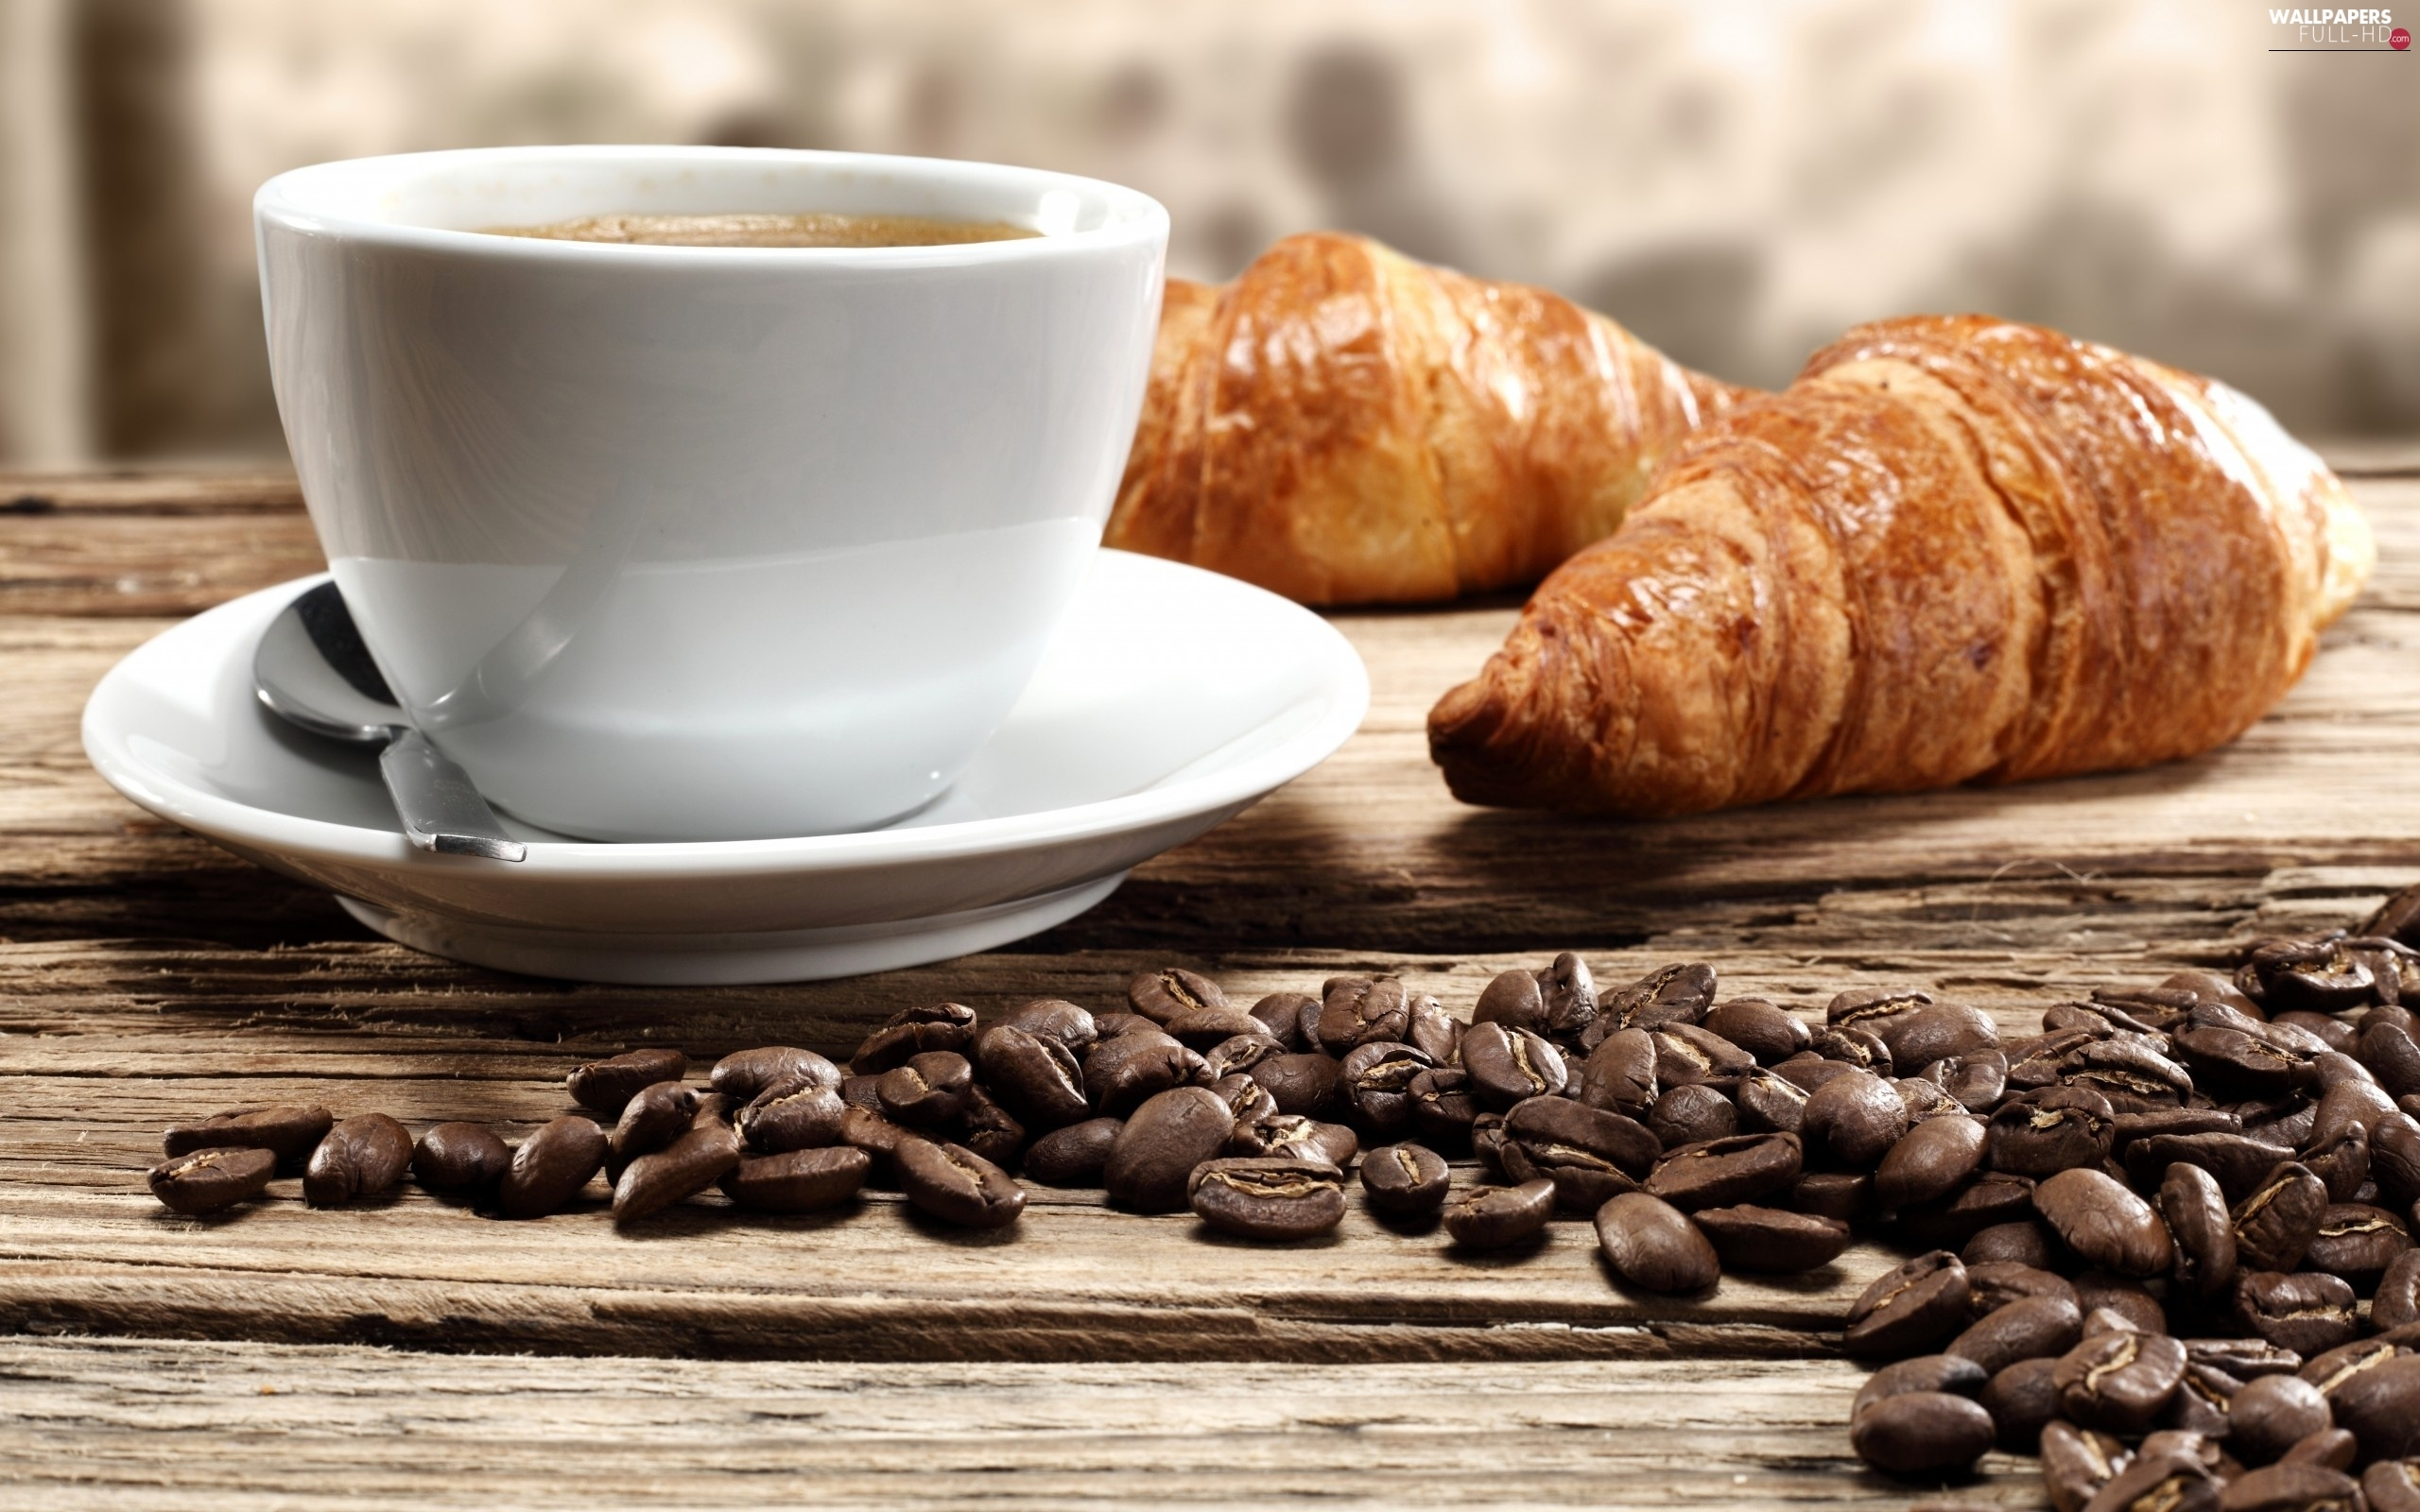 Cup, croissants, coffee, grains